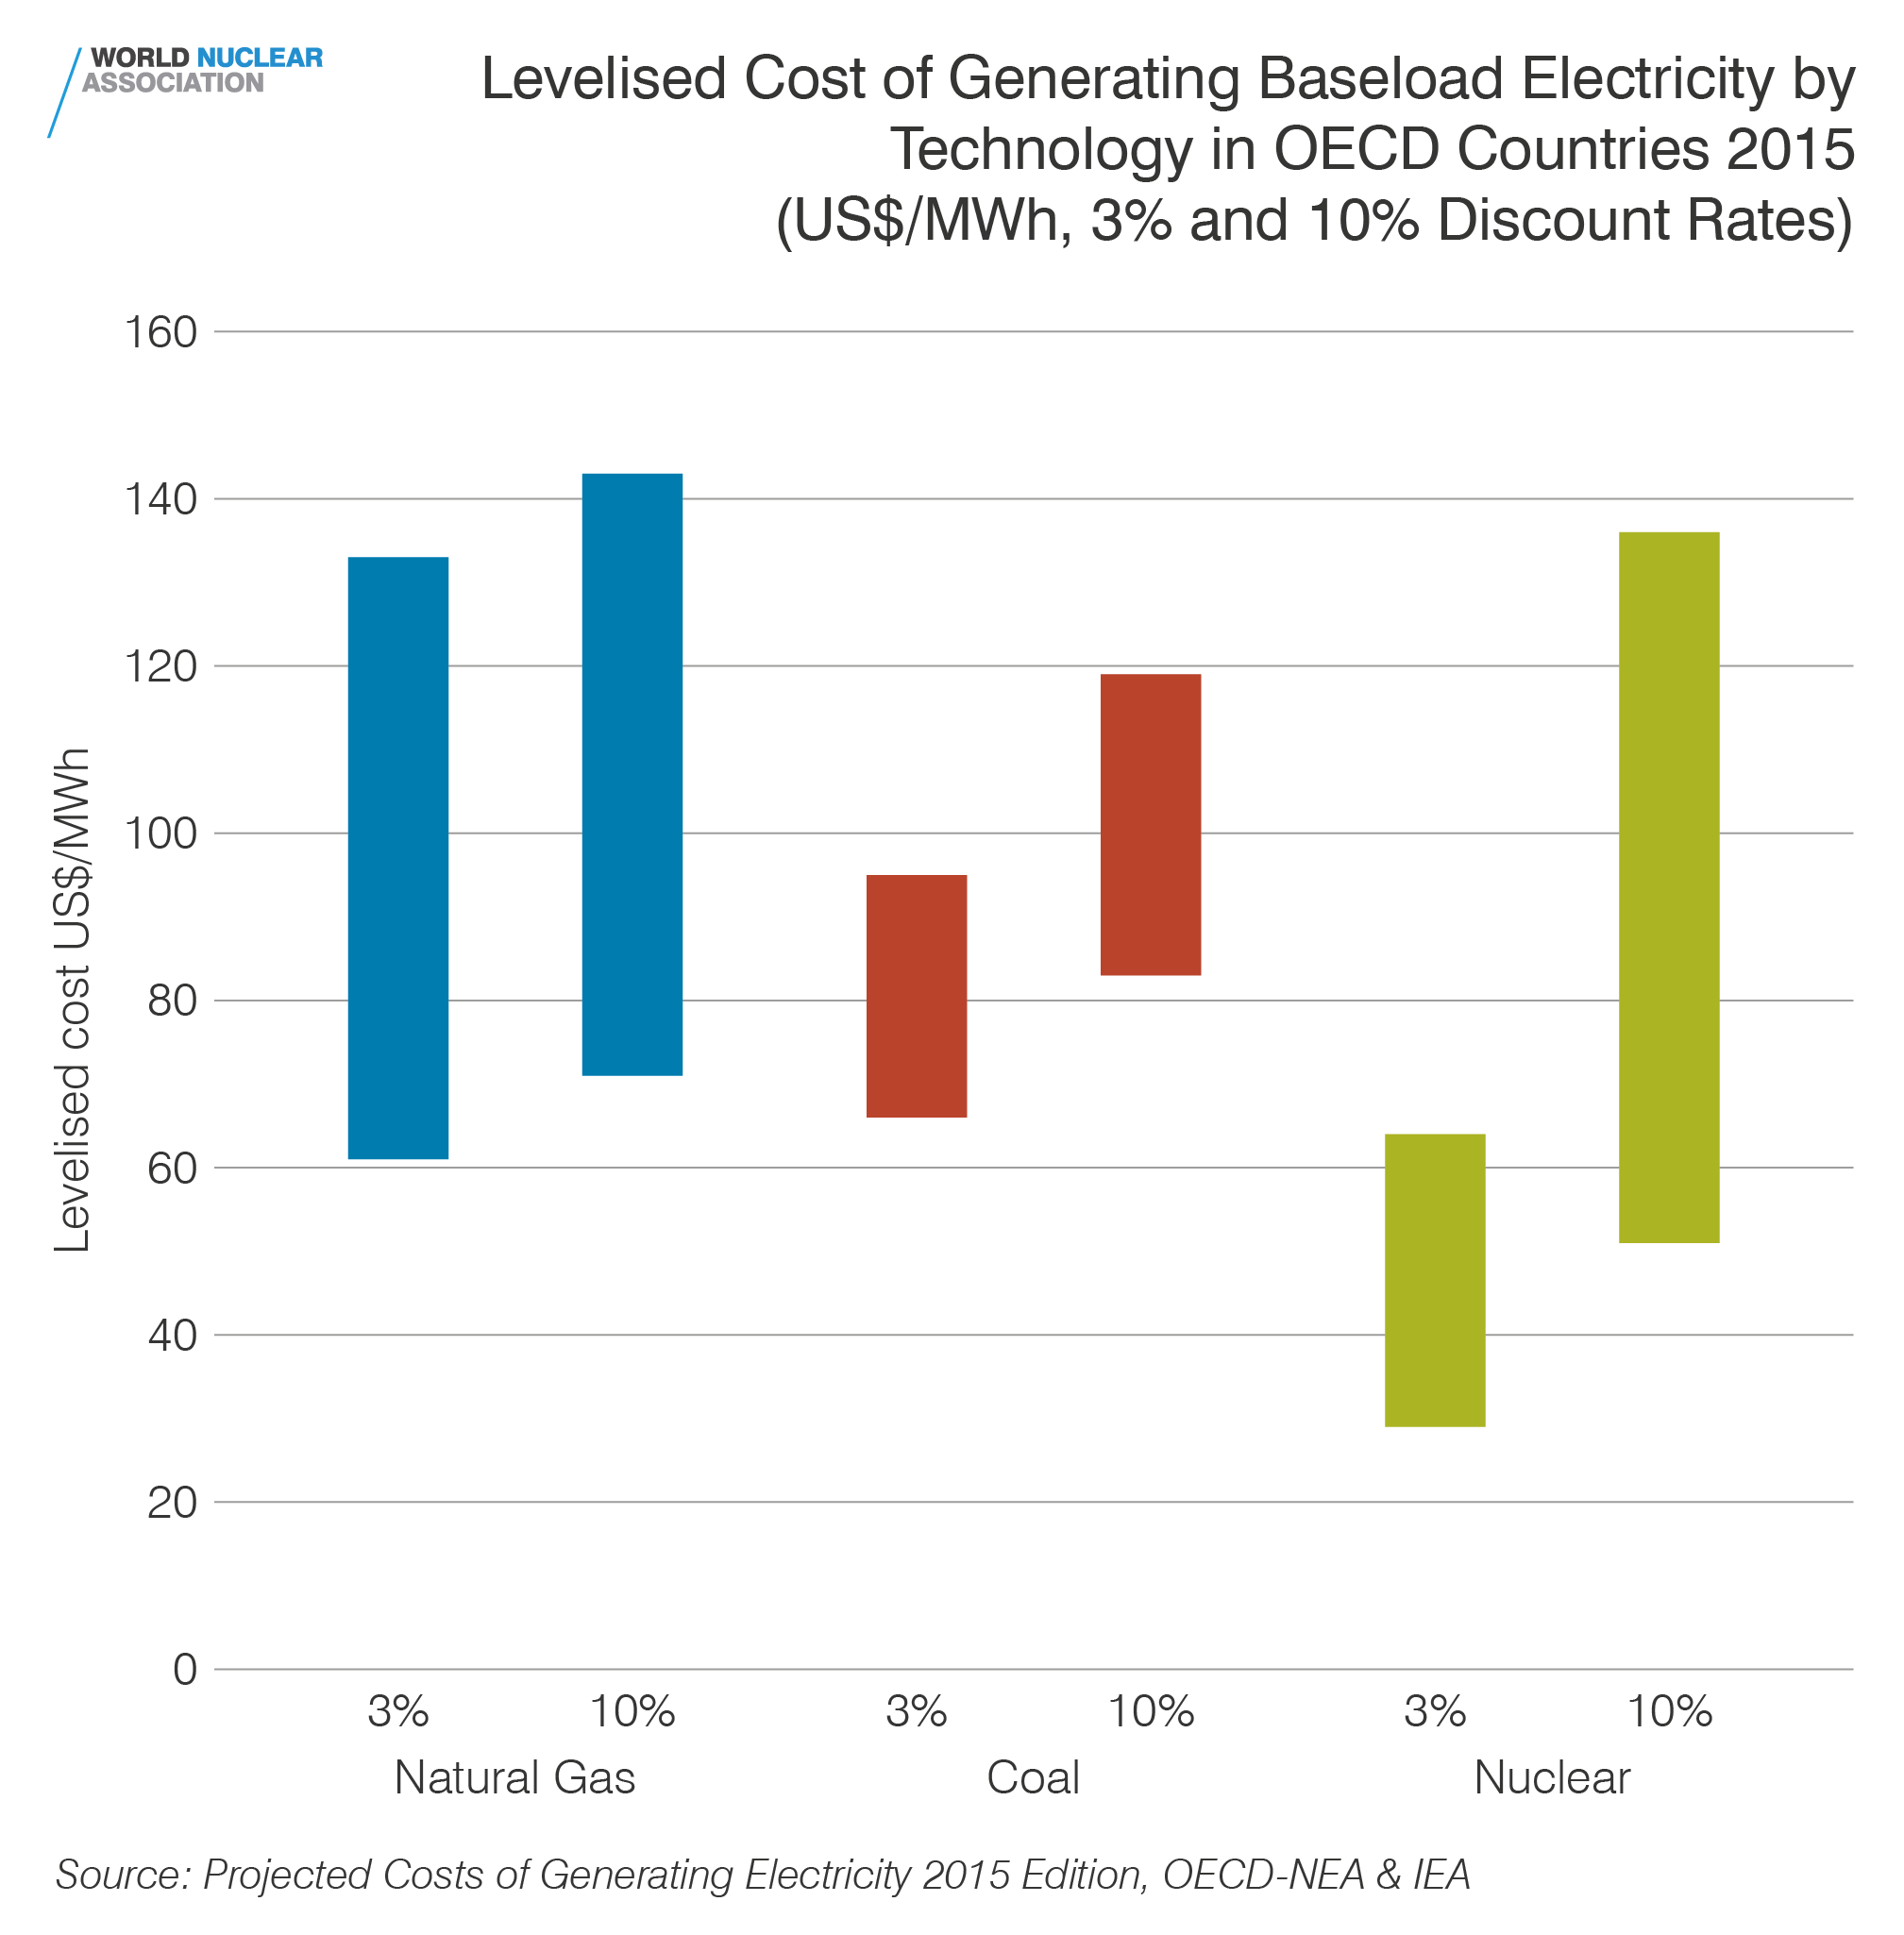 Levelised cost of generating baseload electricity by technology in OECD countries 2015